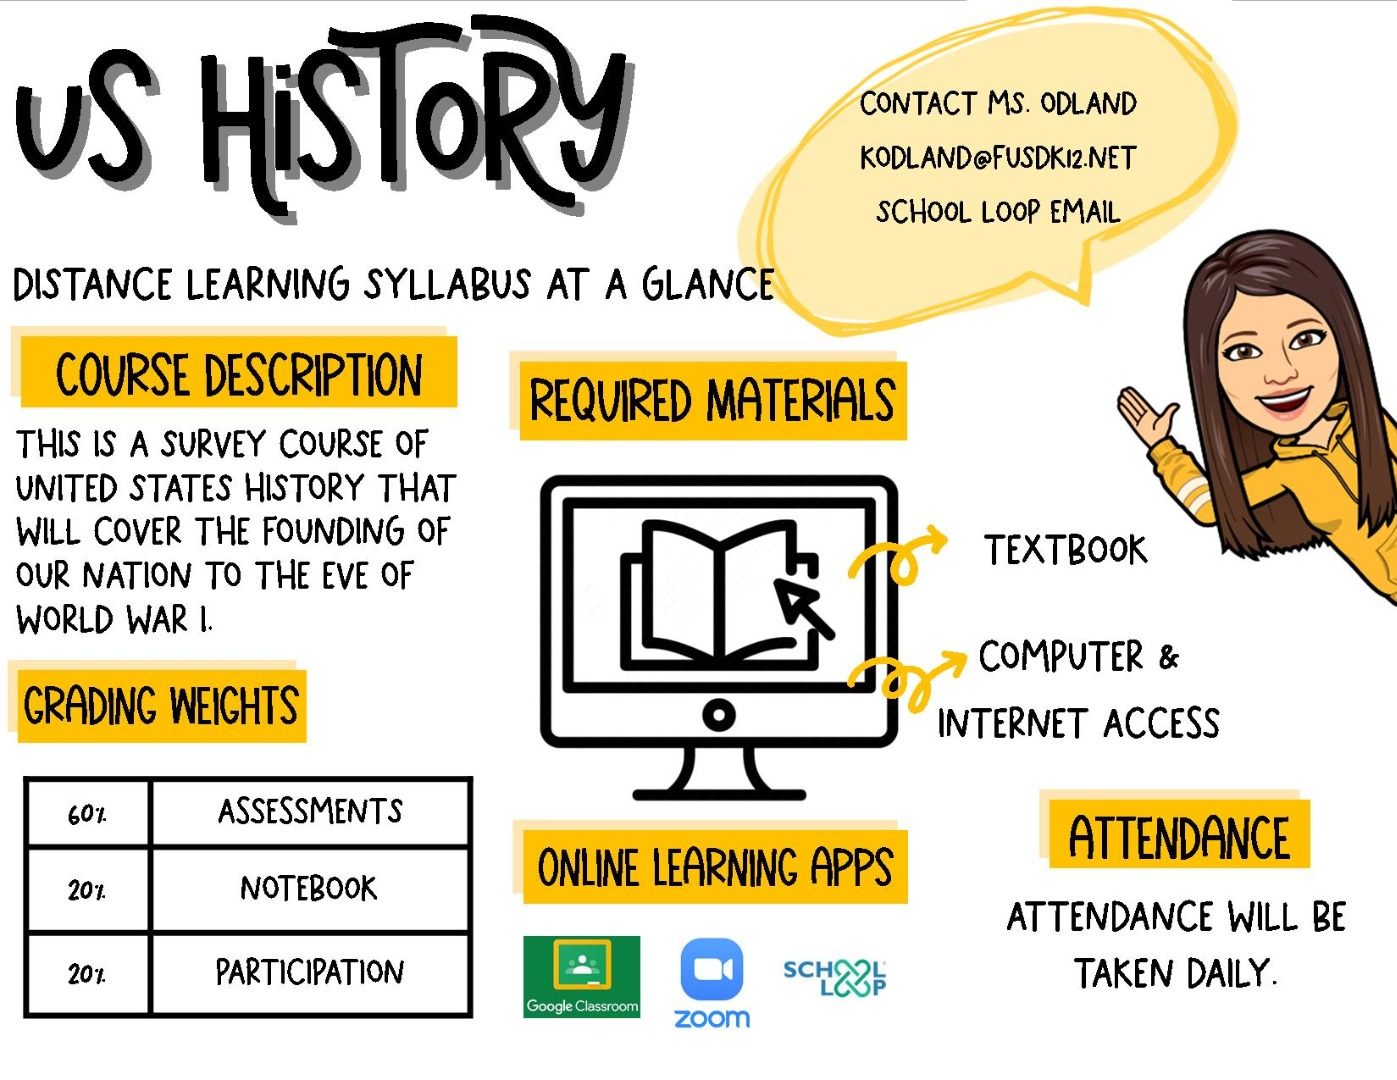 Distance Learning Syllabus at a Glance